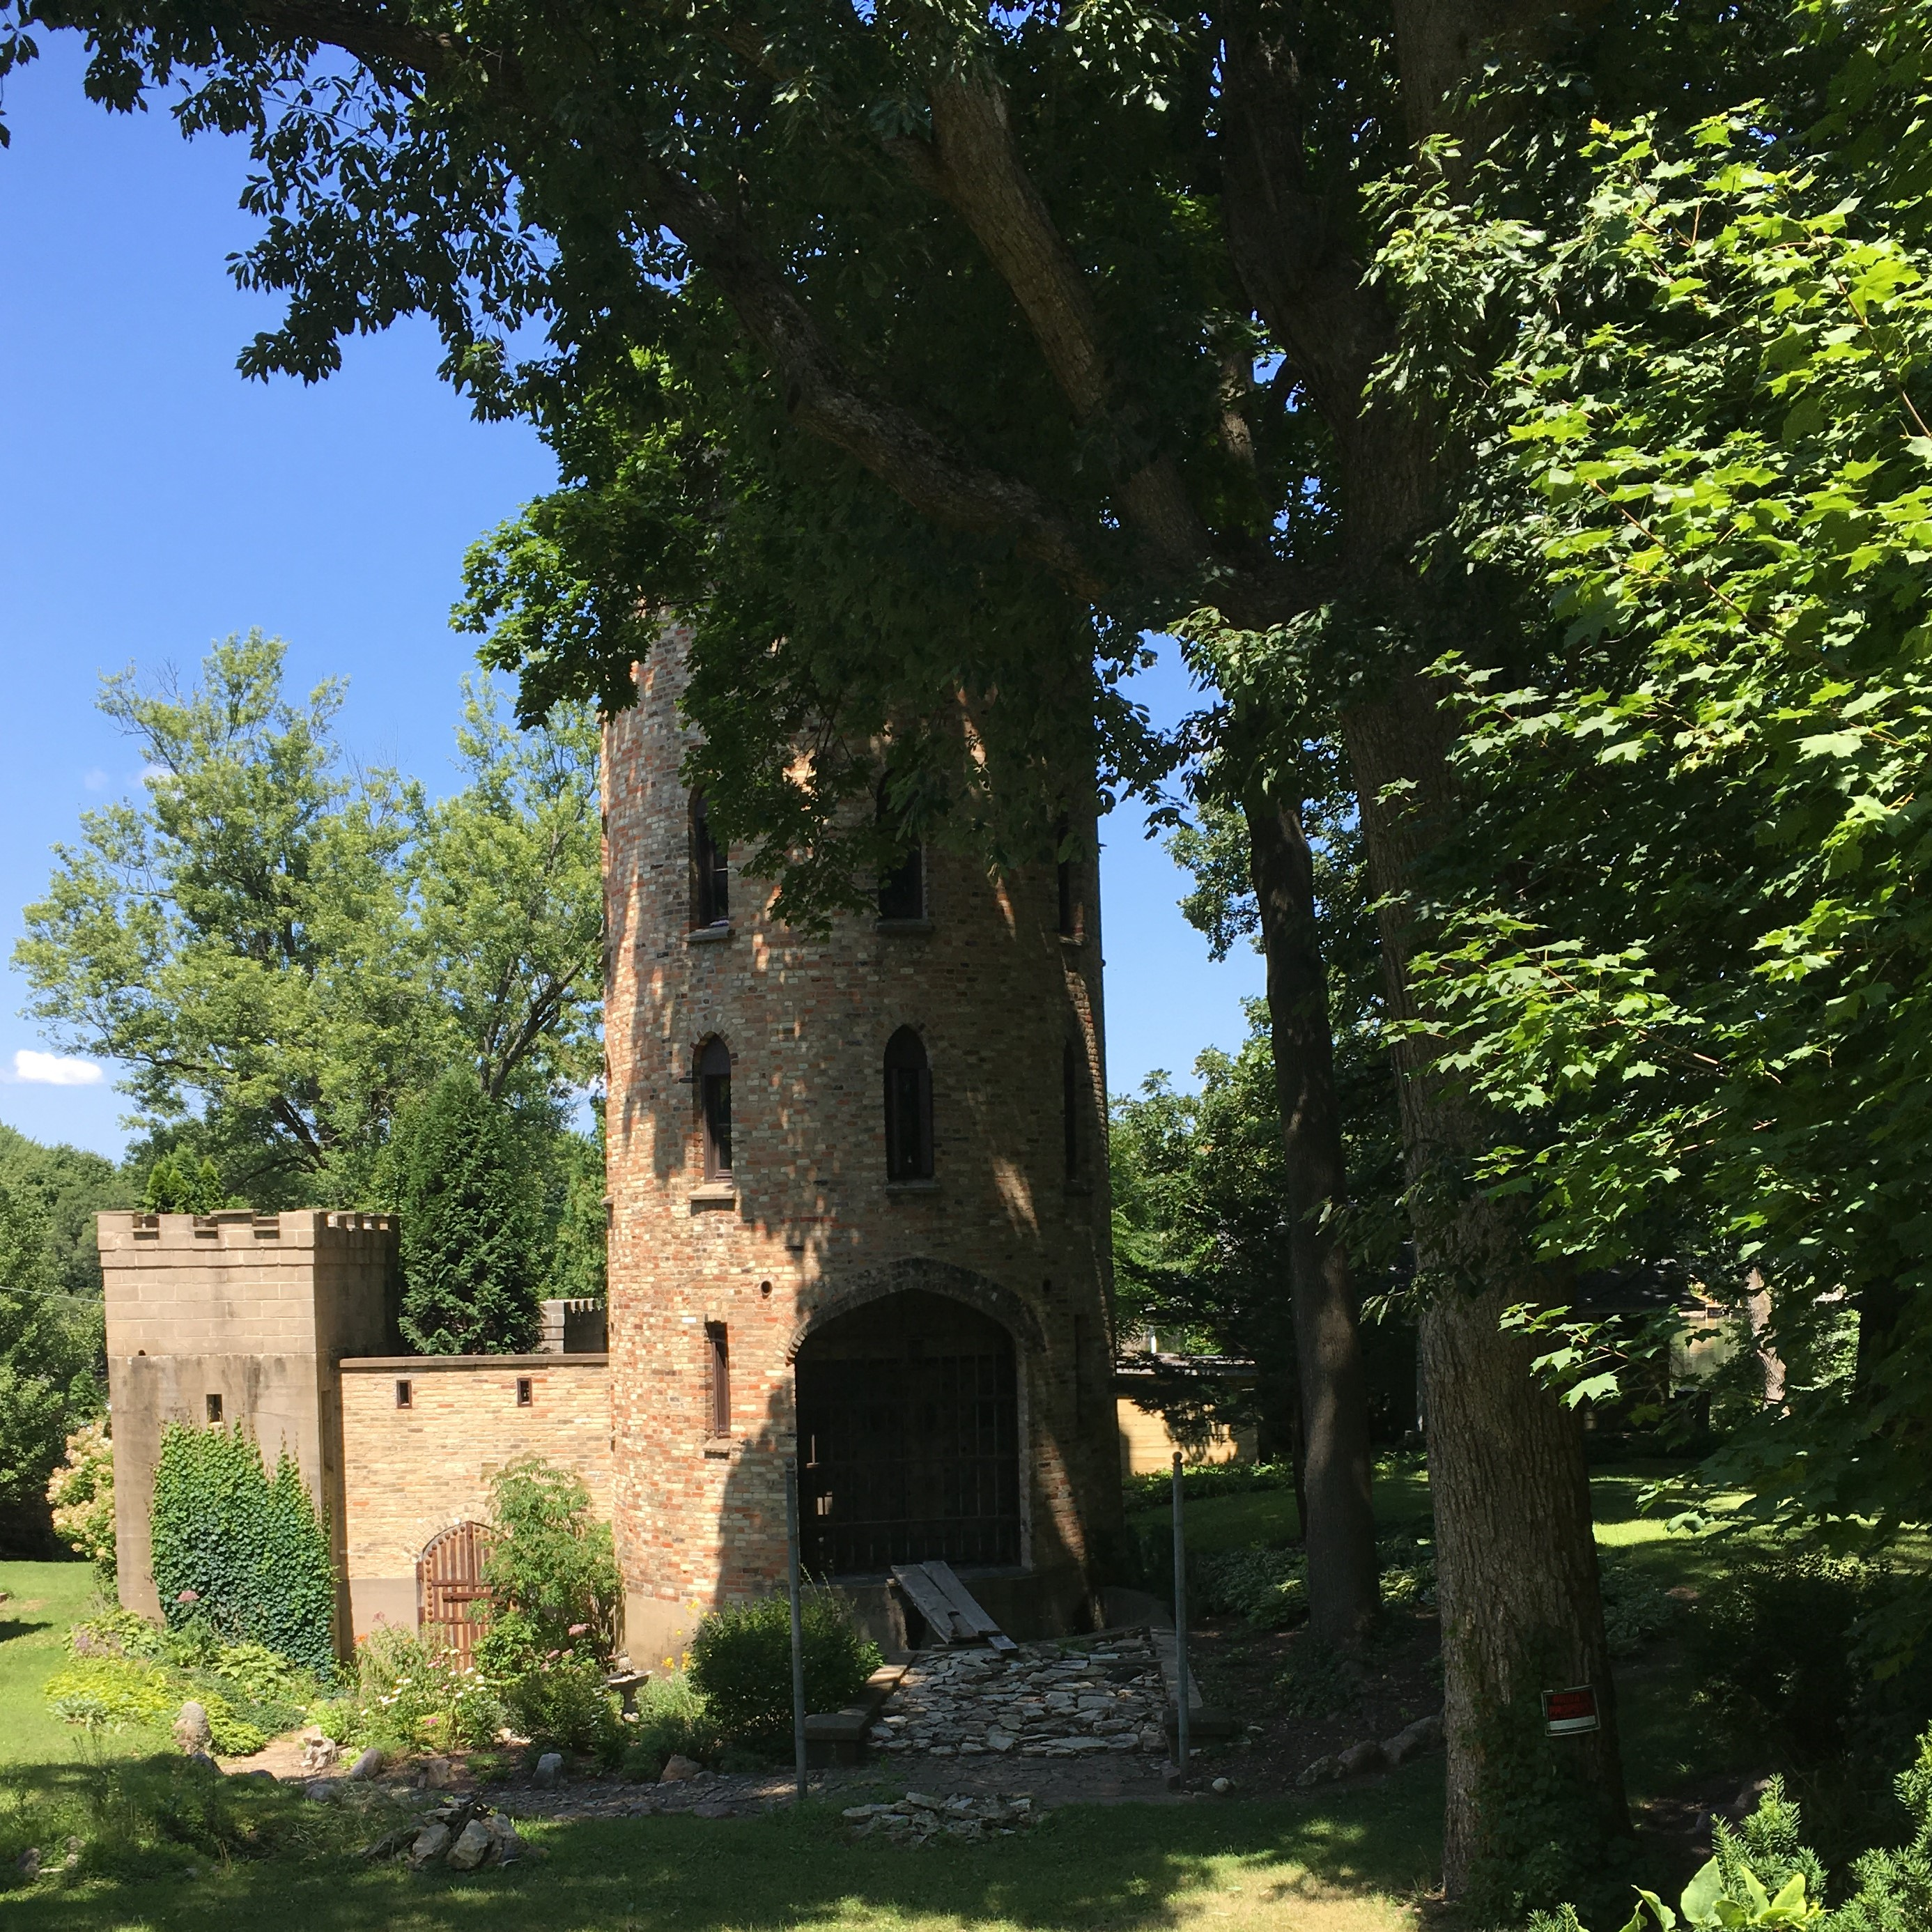 Pratt's Castle Aug 4, 2019